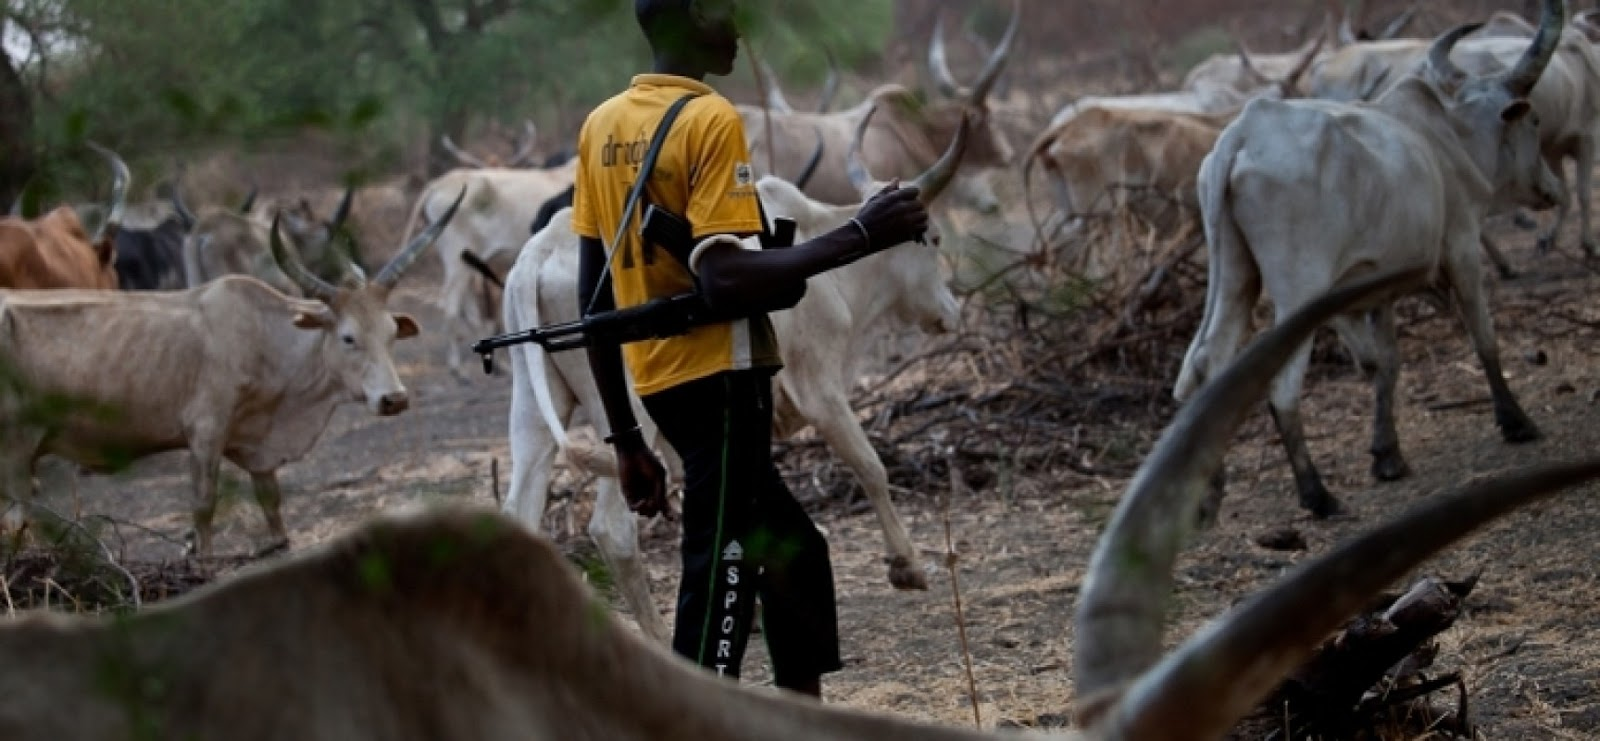 Clergyman tasks F.G. on amicable resolution of herdsmen/farmers clashes